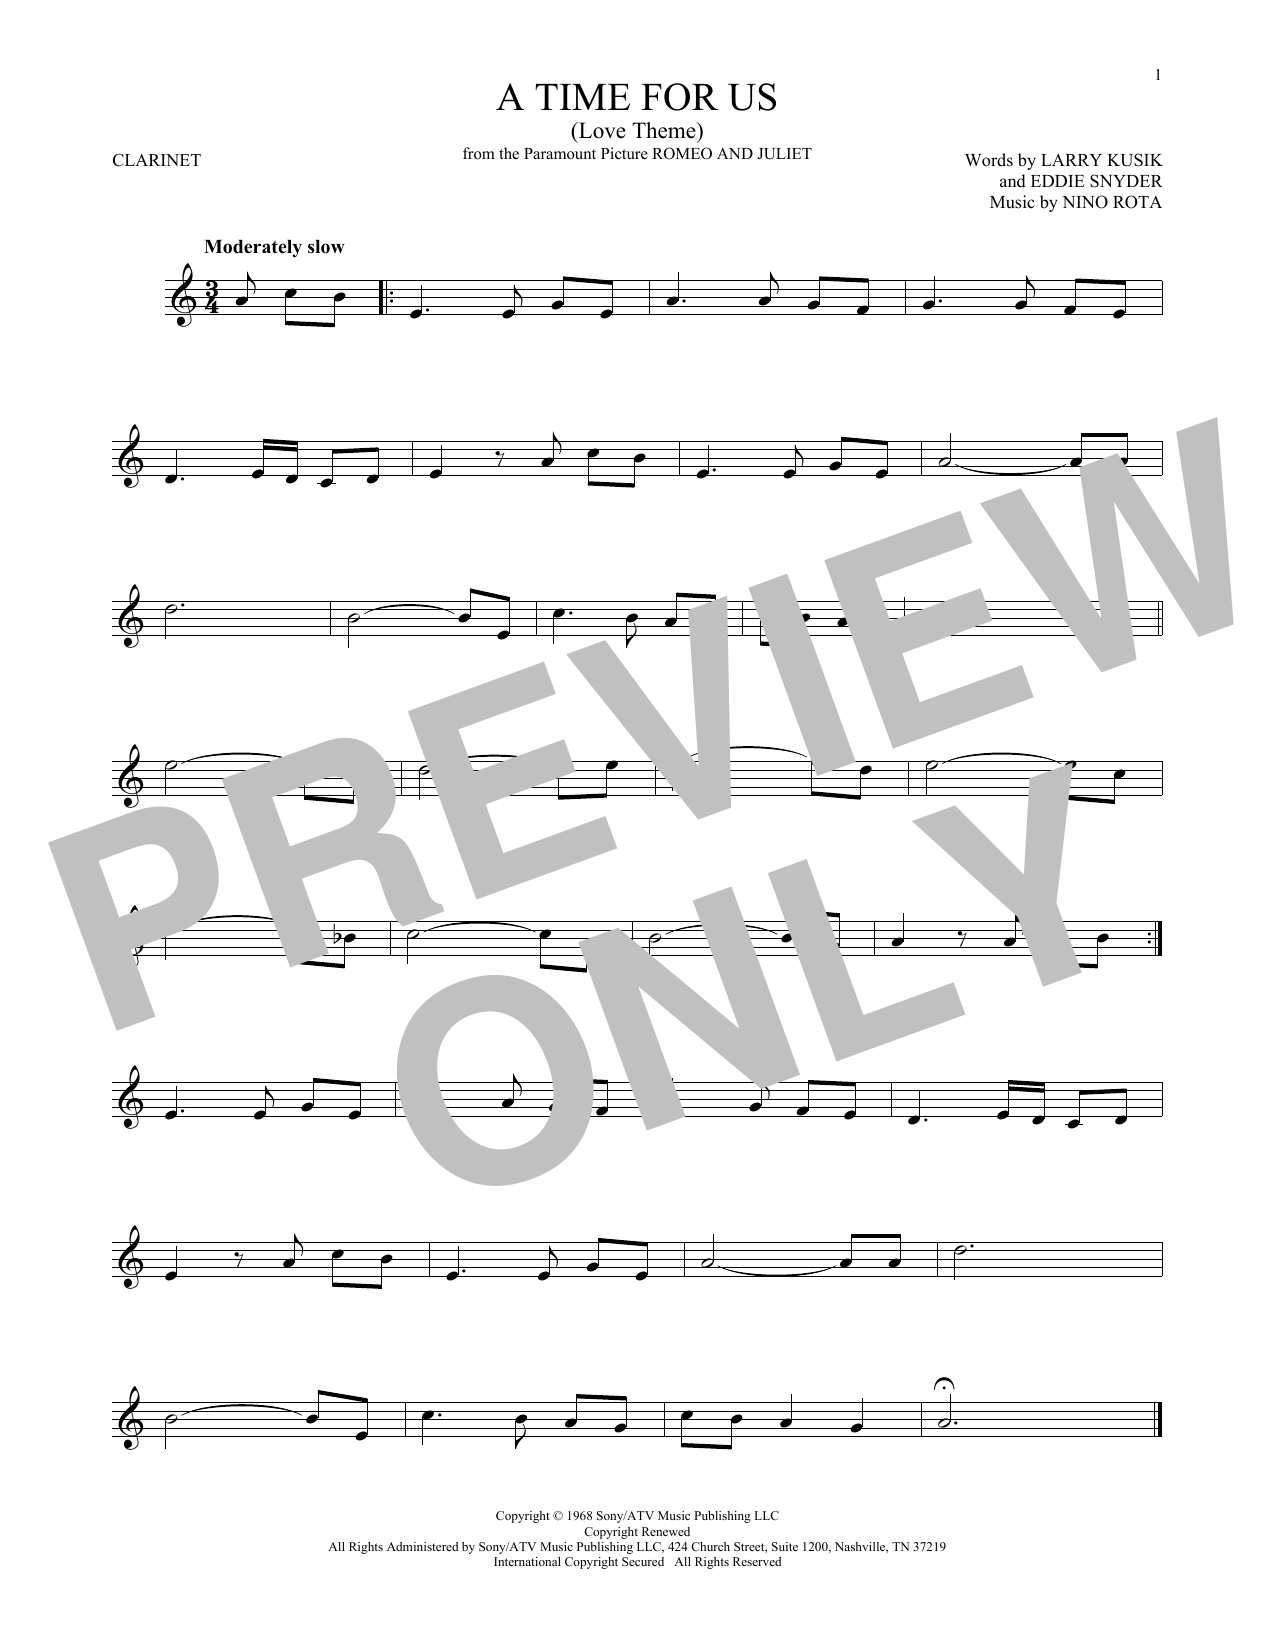 A Time For Us (Love Theme) (Clarinet Solo)